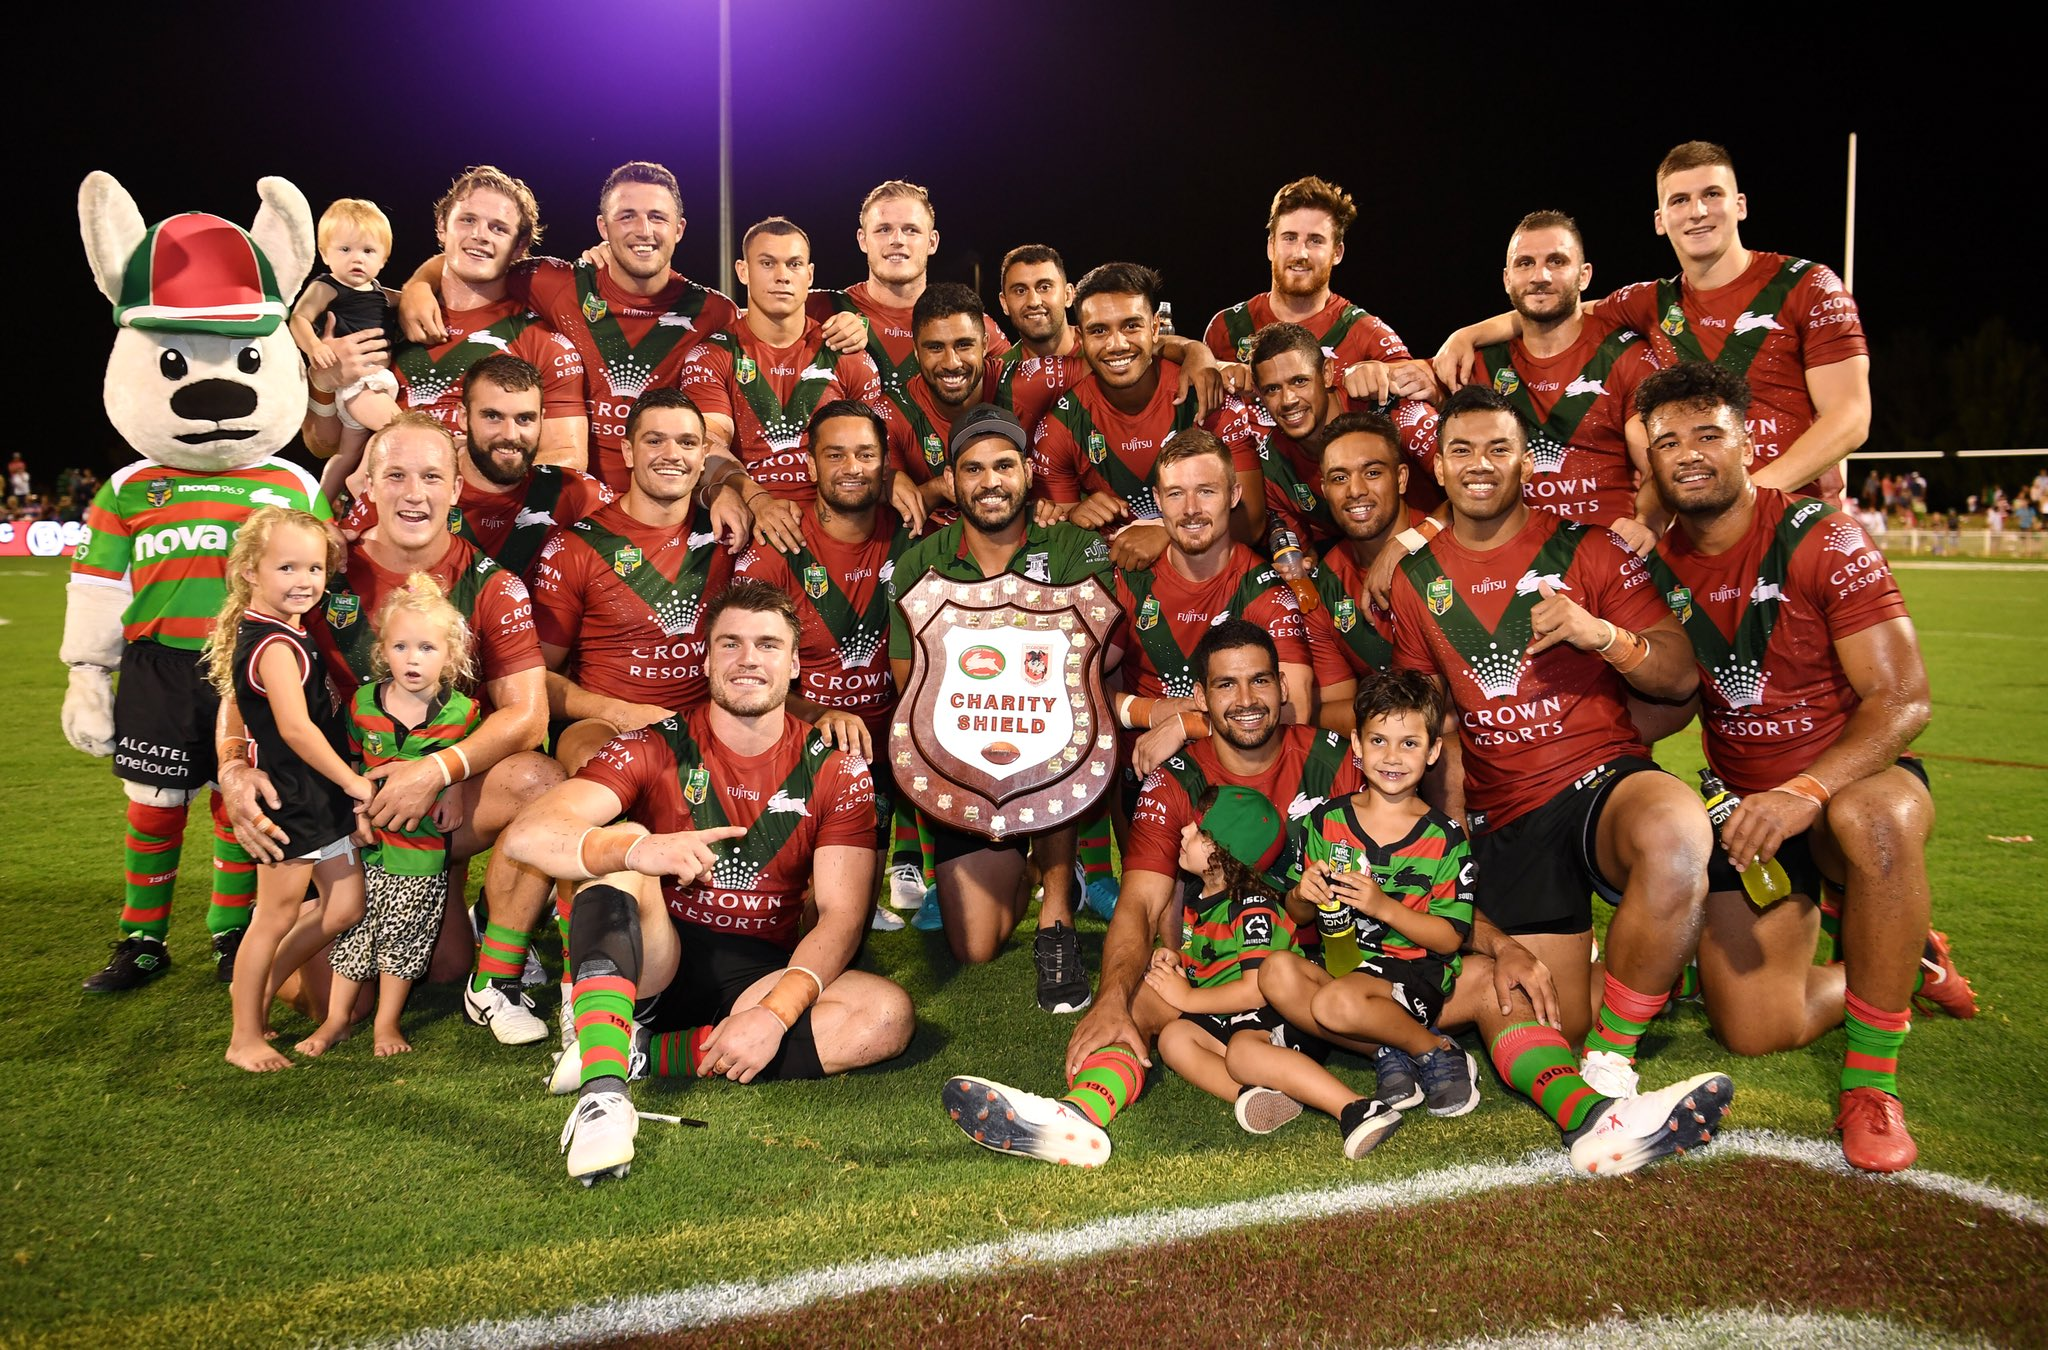 RT @SSFCRABBITOHS: We retain the 🛡for the 6th year straight! 🐇   #GoRabbitohs #CharityShield https://t.co/CPfuoNz540